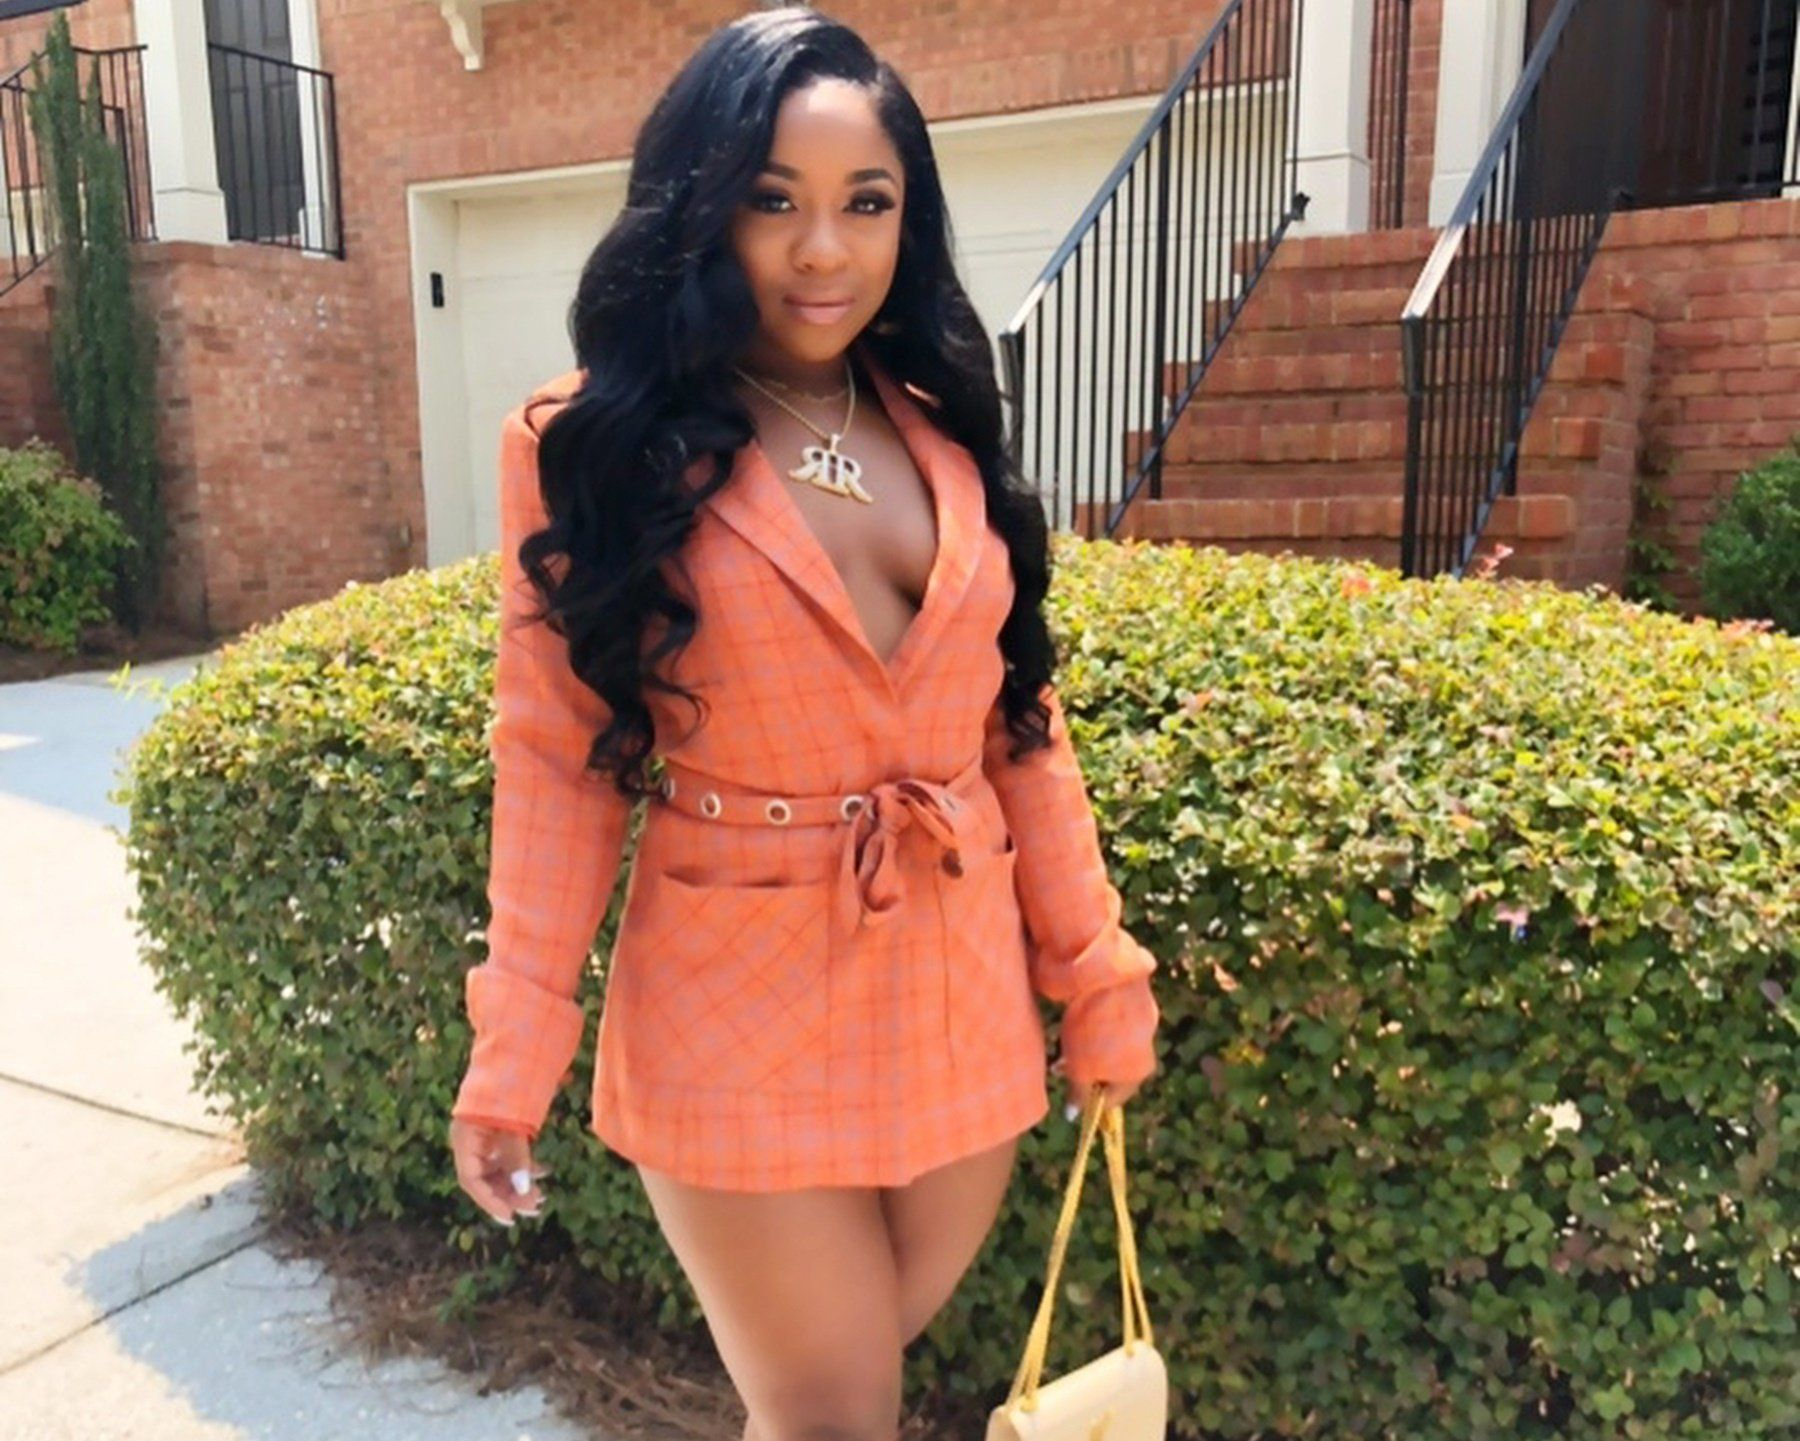 Reginae Carter Stuns In Super Hot And Revealing Plaid Set While Dancing To Her Own Song 'Truth' In New Video!